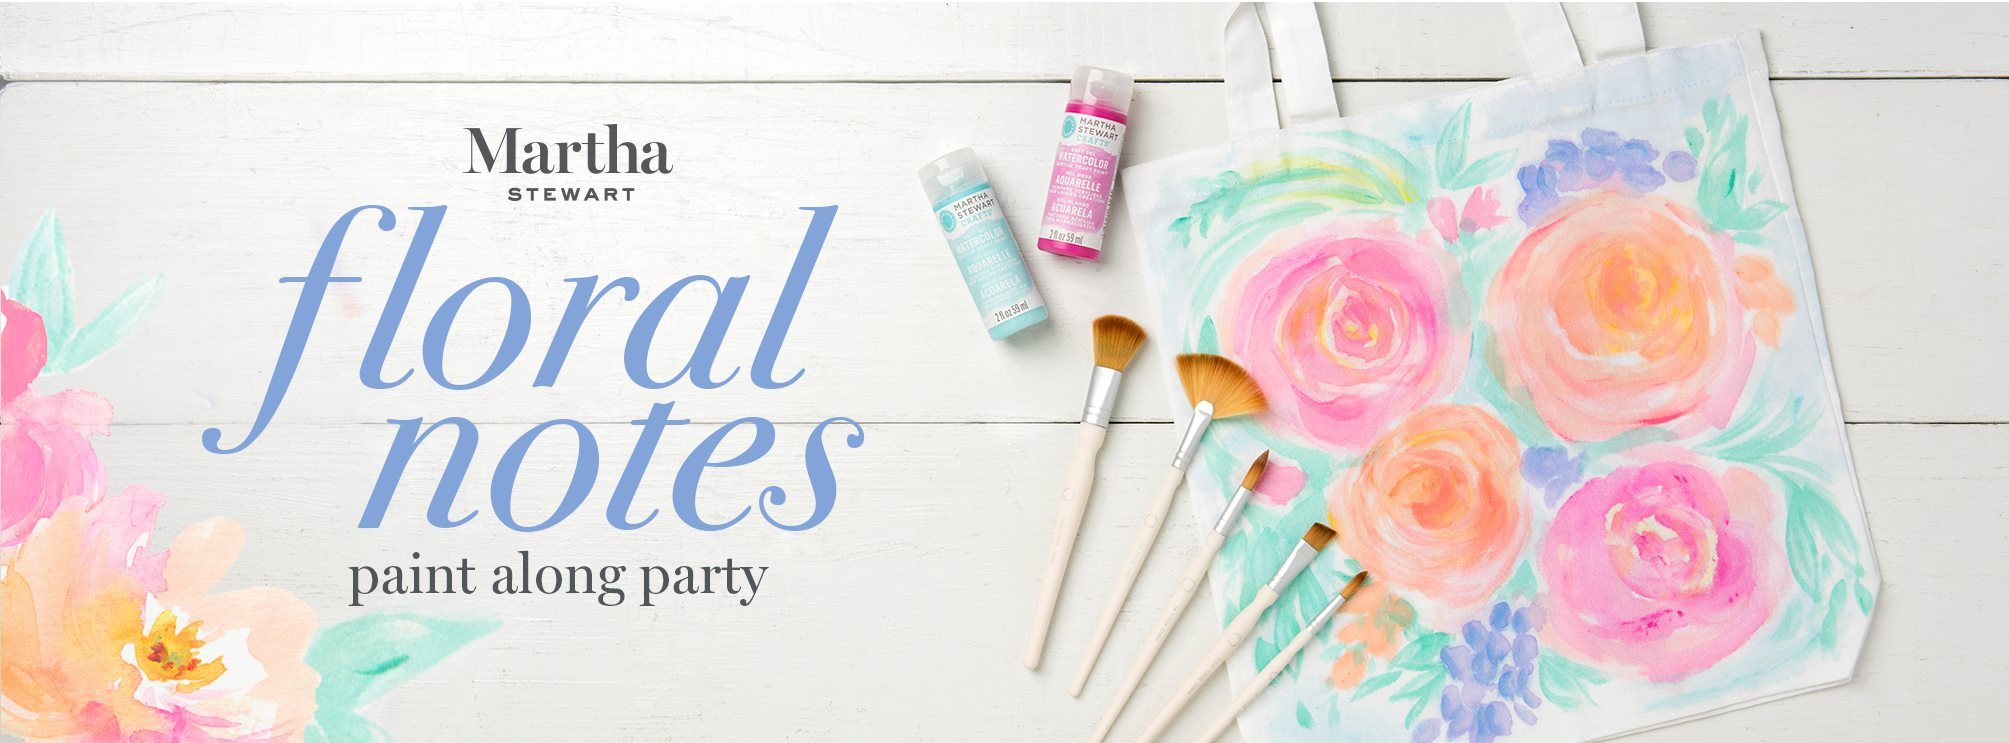 Martha Stewart Floral Notes Paint Along Party